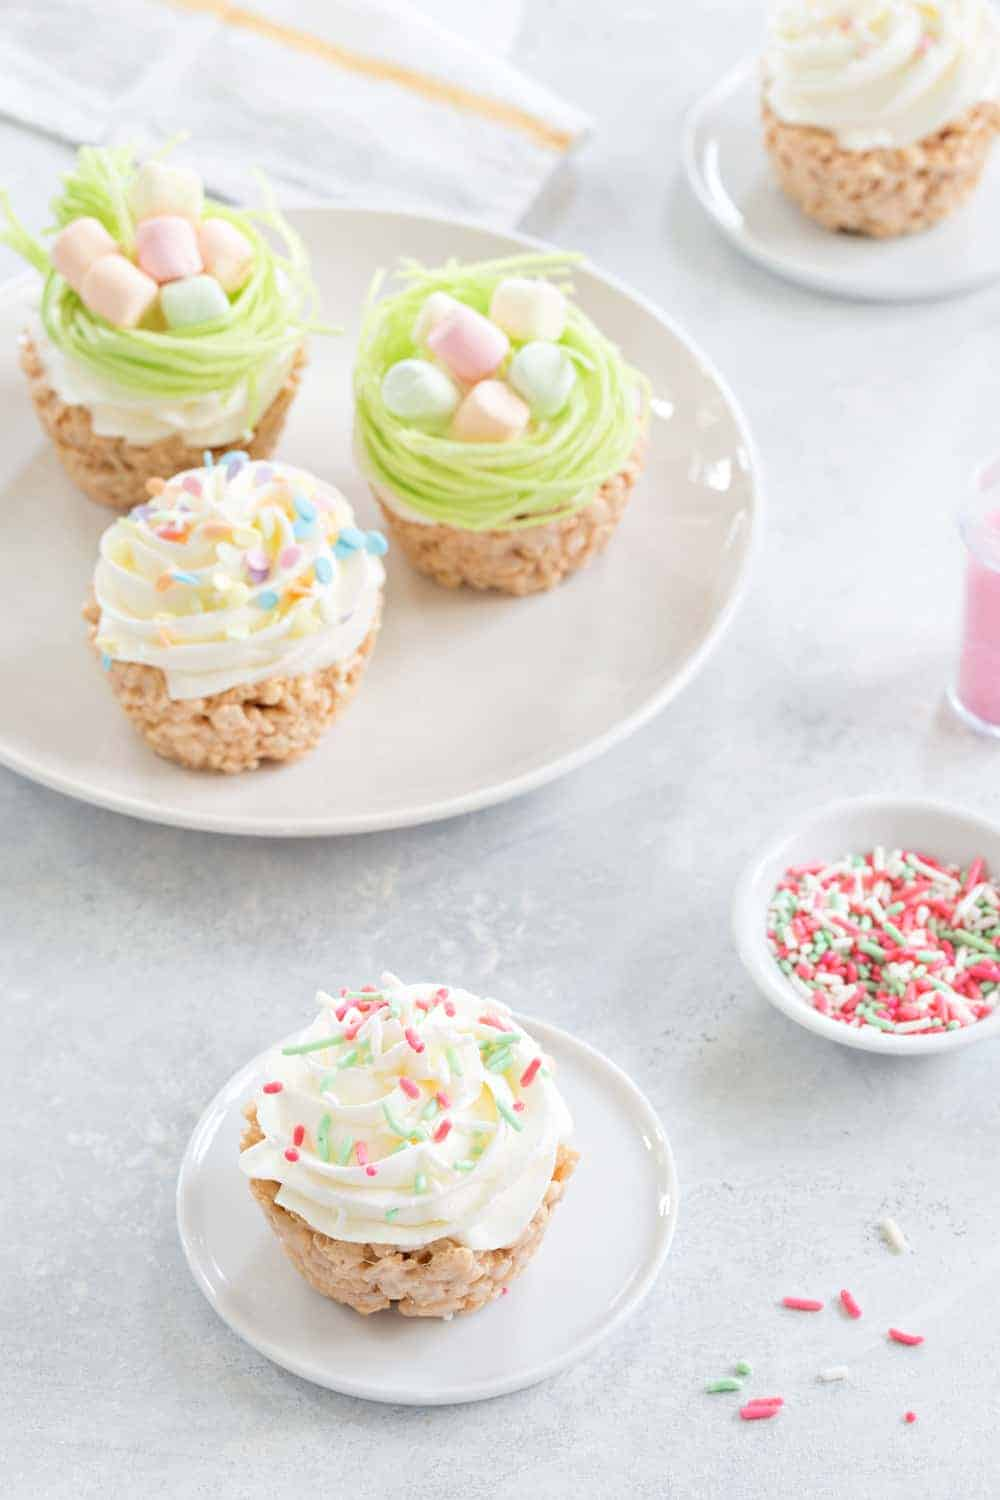 Marshmallow Treat Cupcakes are an sweet and delicious addition to any party!  So fun and festive.